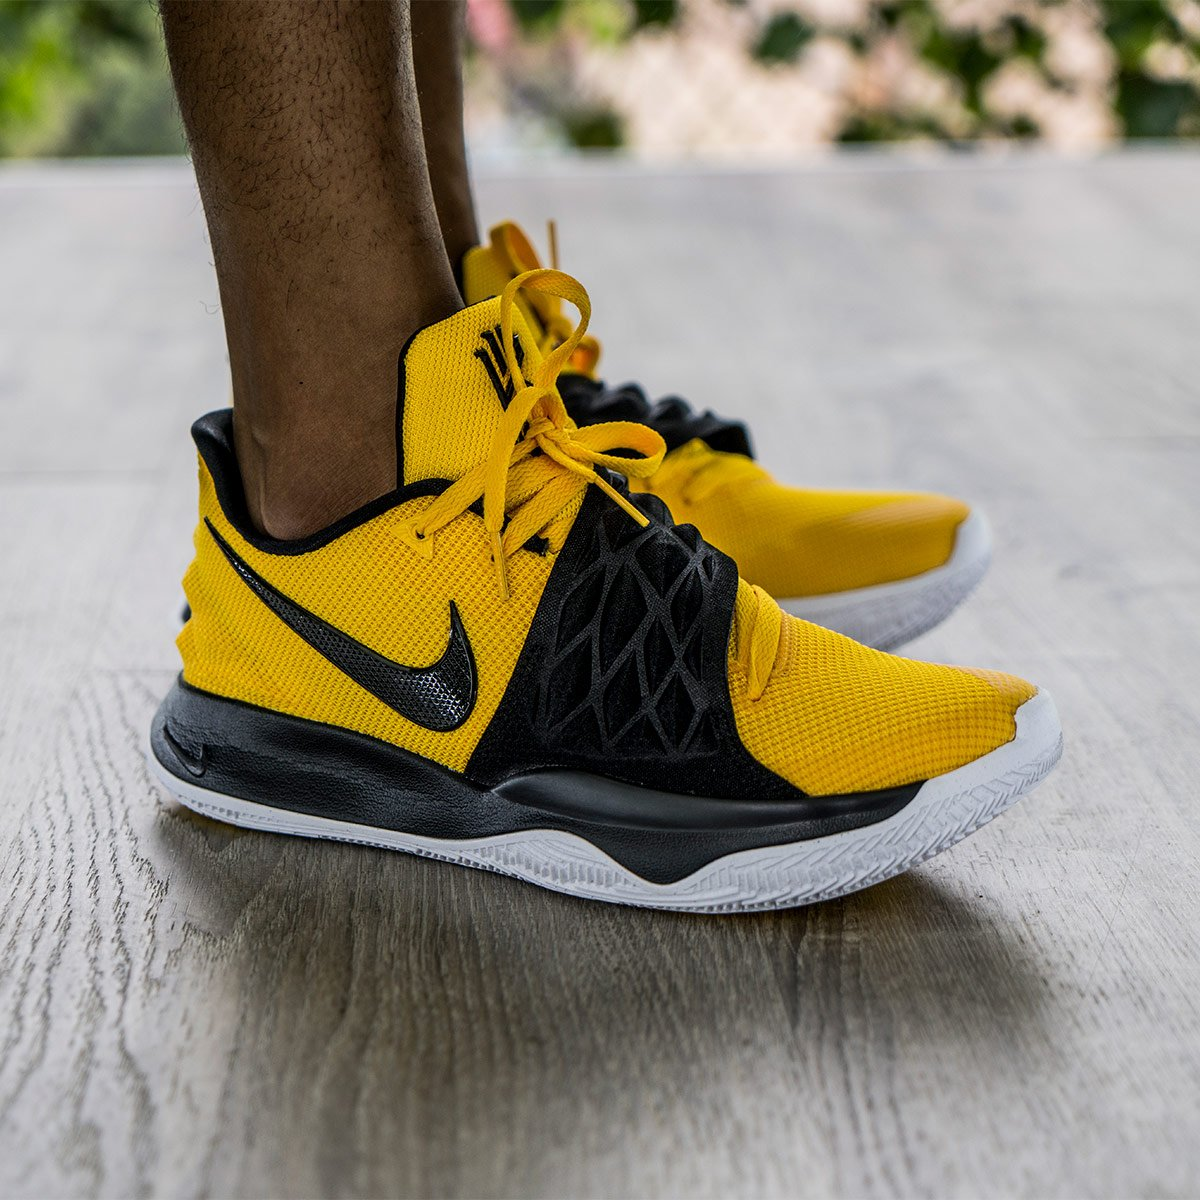 kyrie low bruce lee Shop Clothing